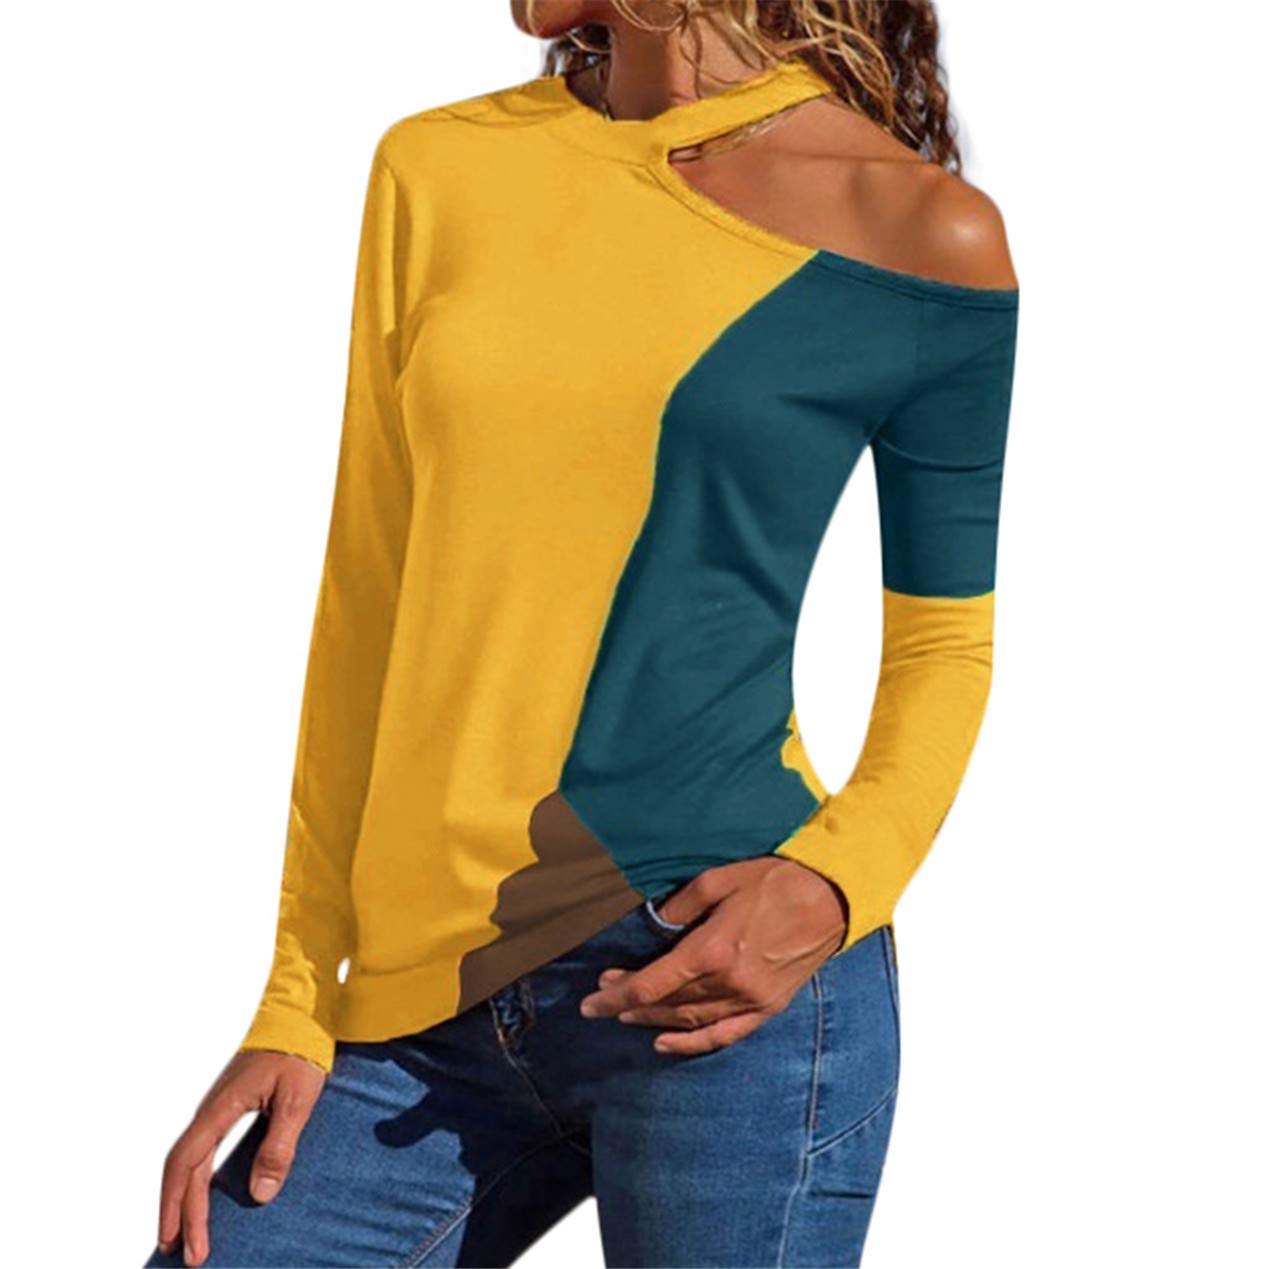 TIFENNY Plus Size Loose Sexy Shirt for Women Hanging Neck Off Shoulder Asymmetric Patchwork Color Block T-Shirts Tops